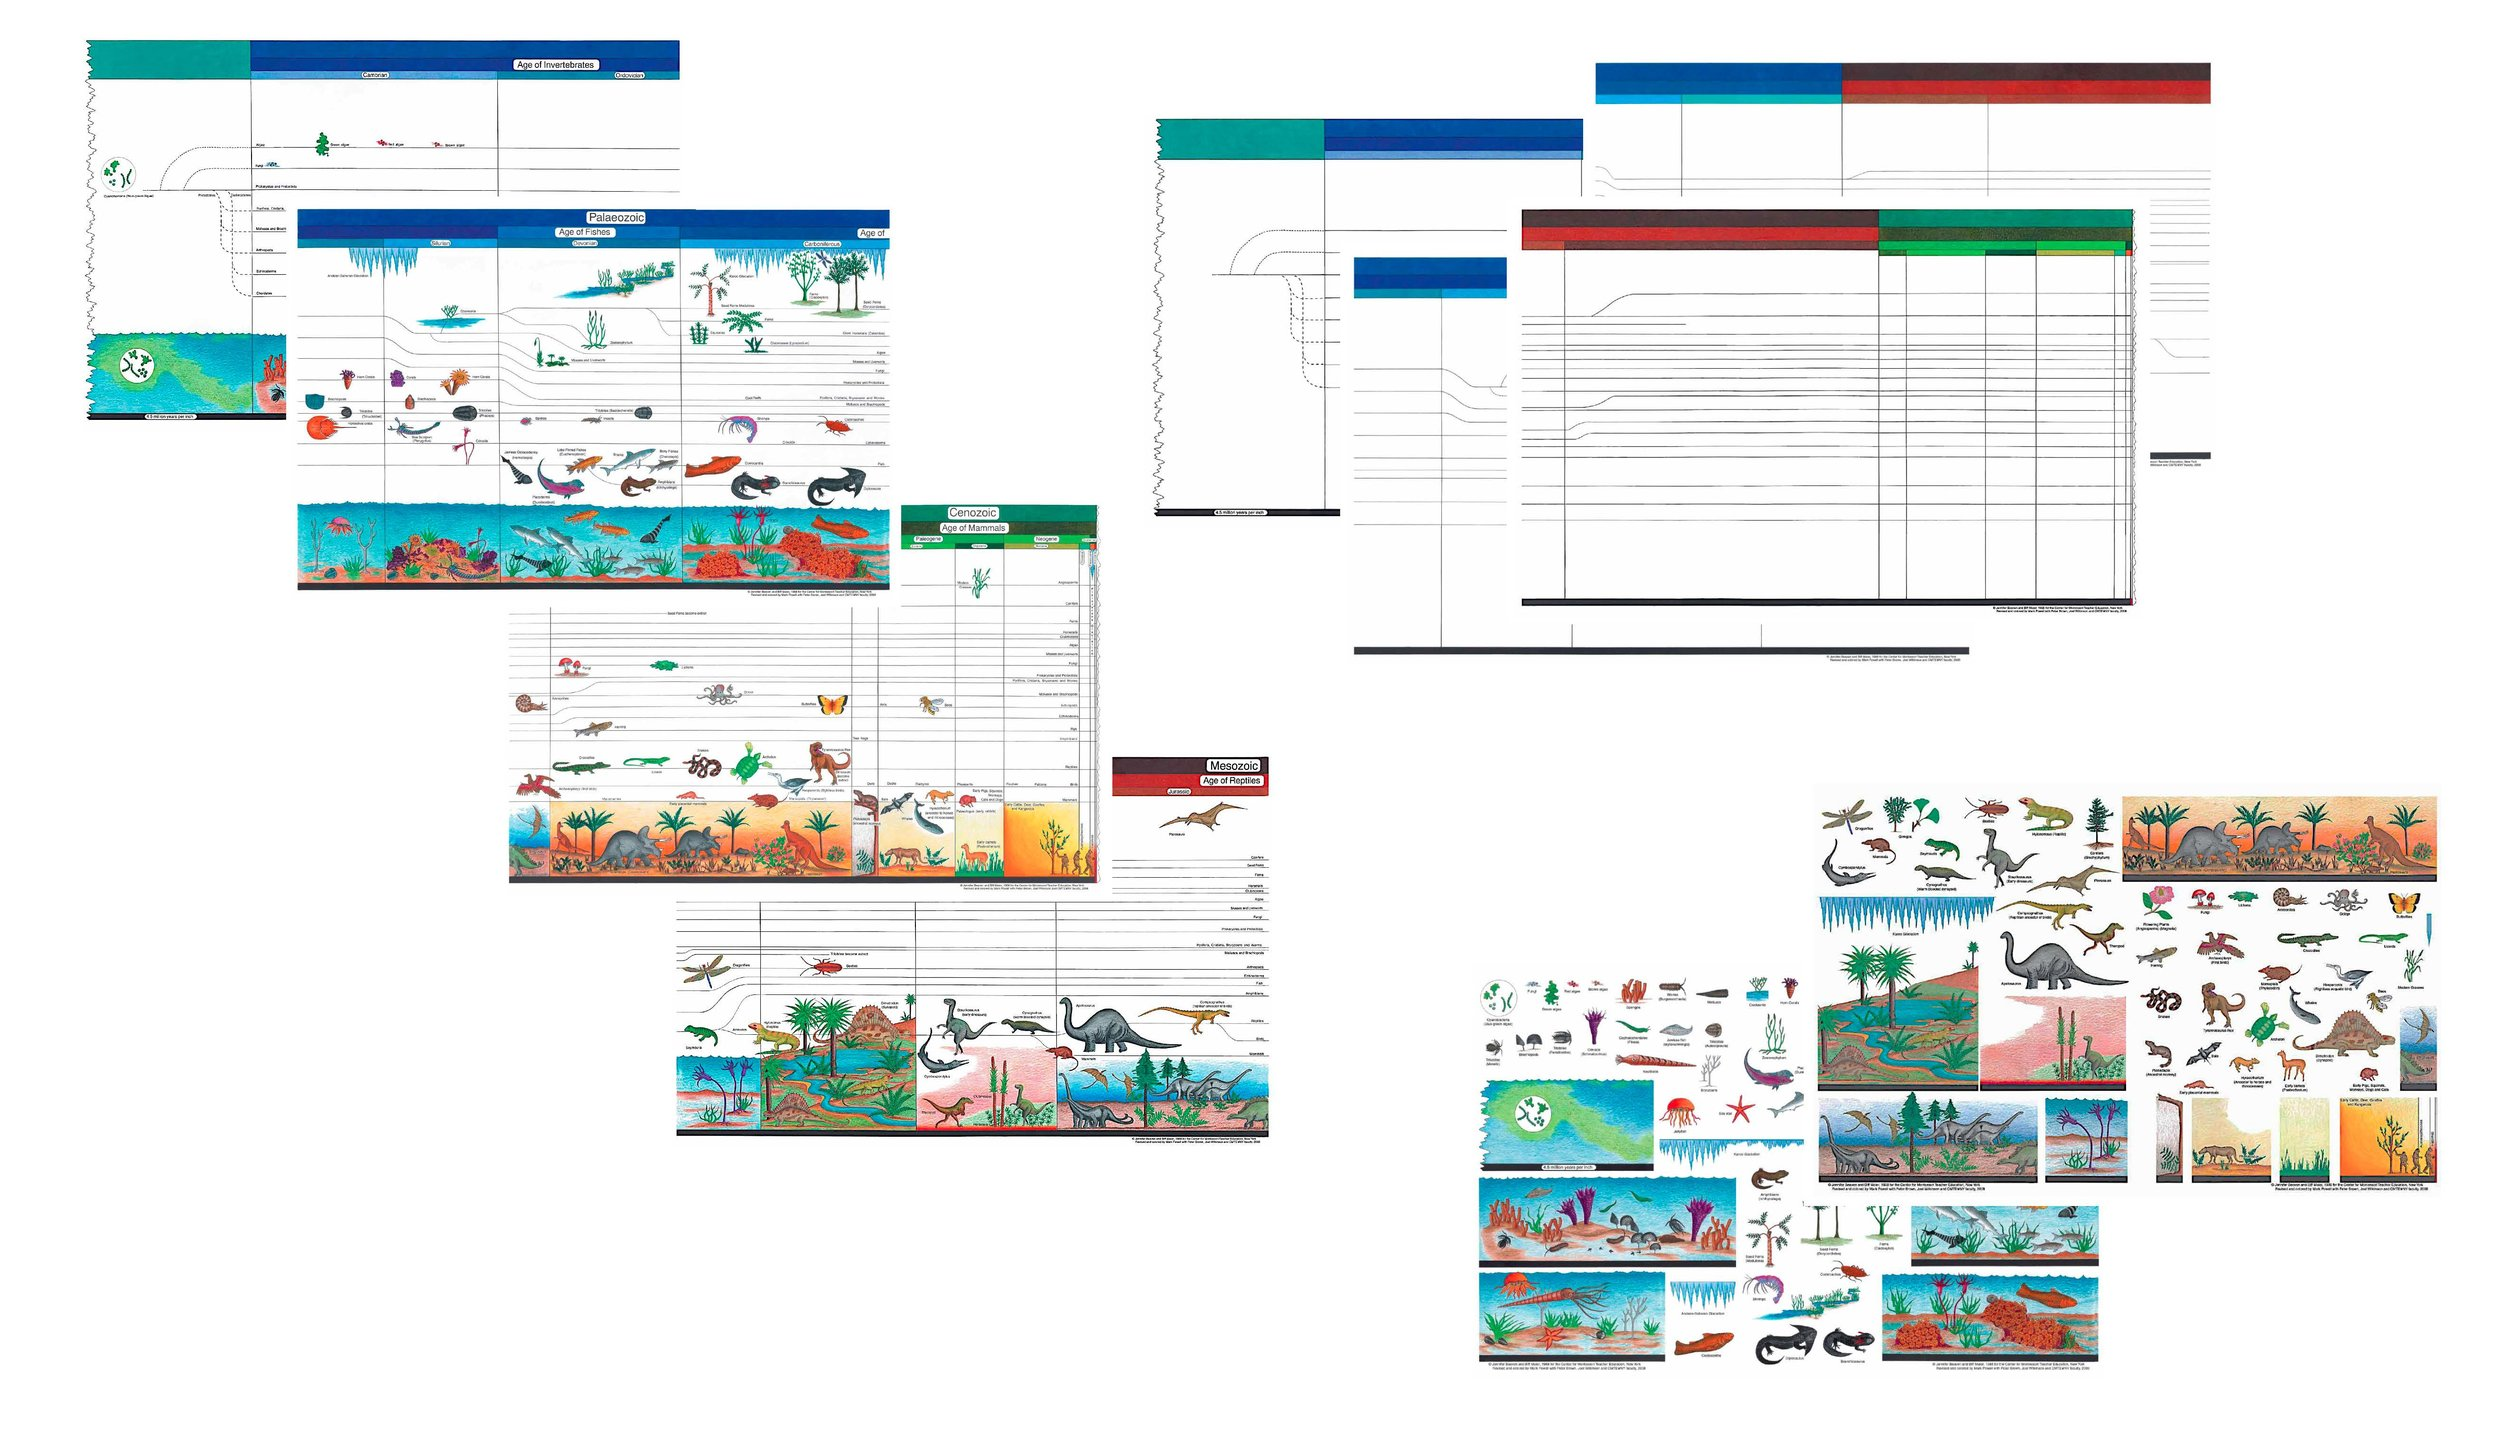 Timeline of Life Charts